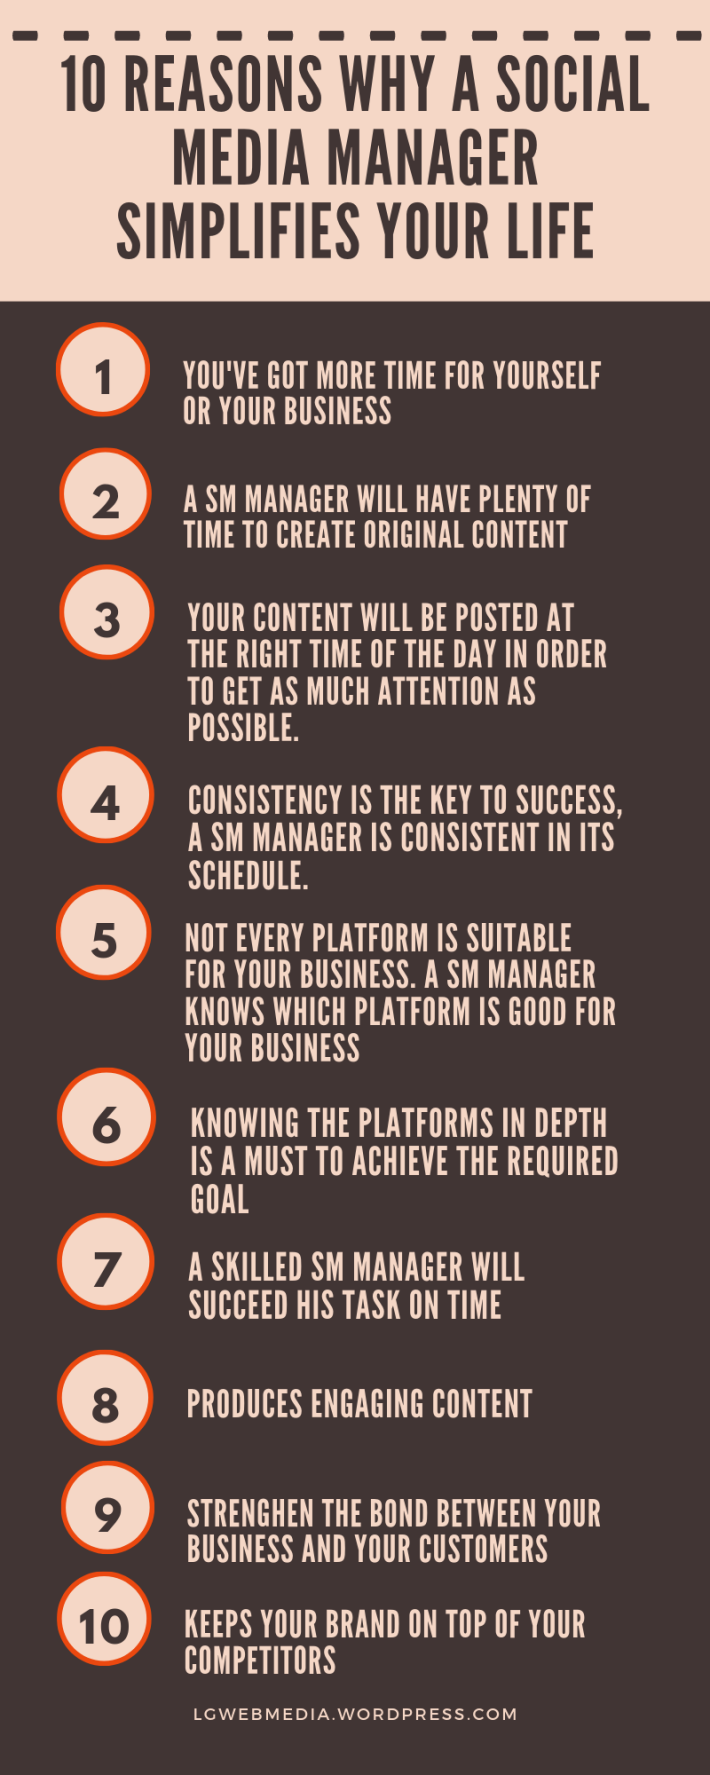 10 reasons why a social media manager simplifies your life (1)